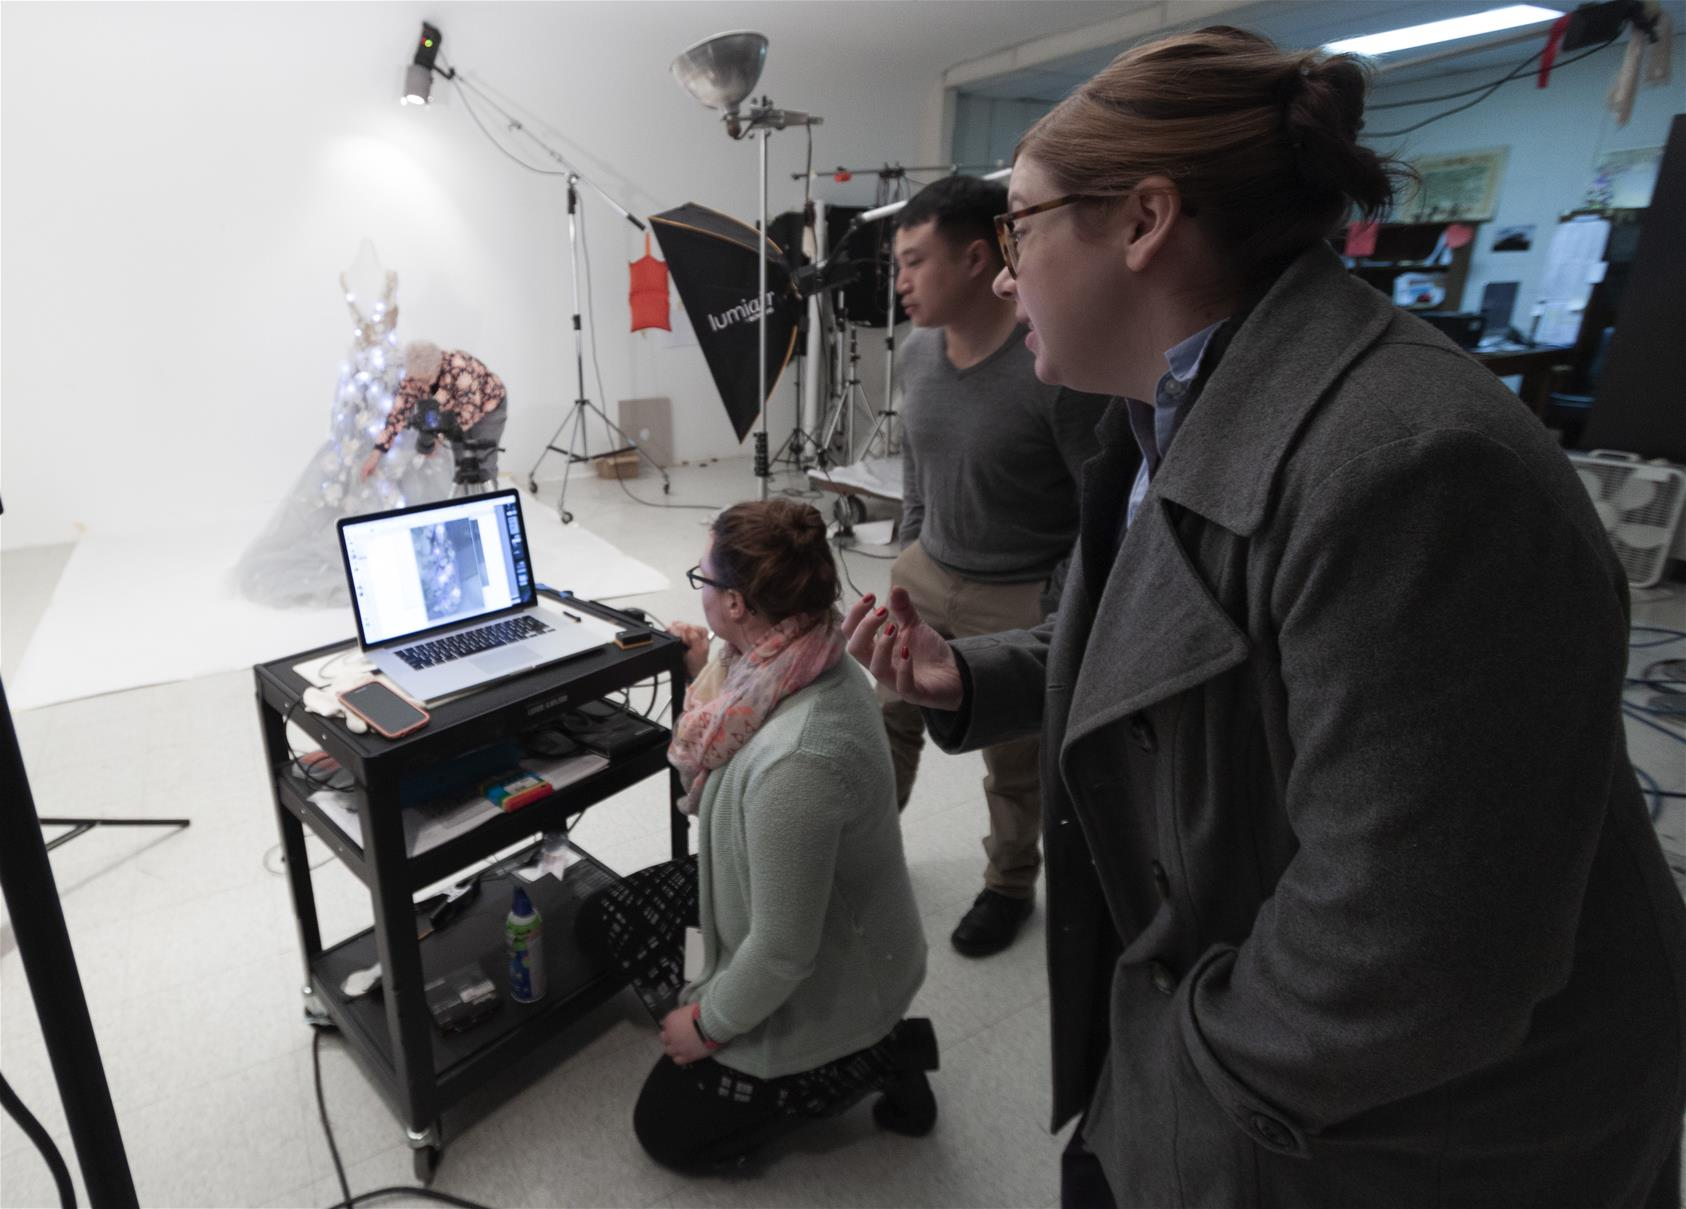 Three people around a computer on a cart, with photography equipment and a woman adjusting a dress on a dress form in the background